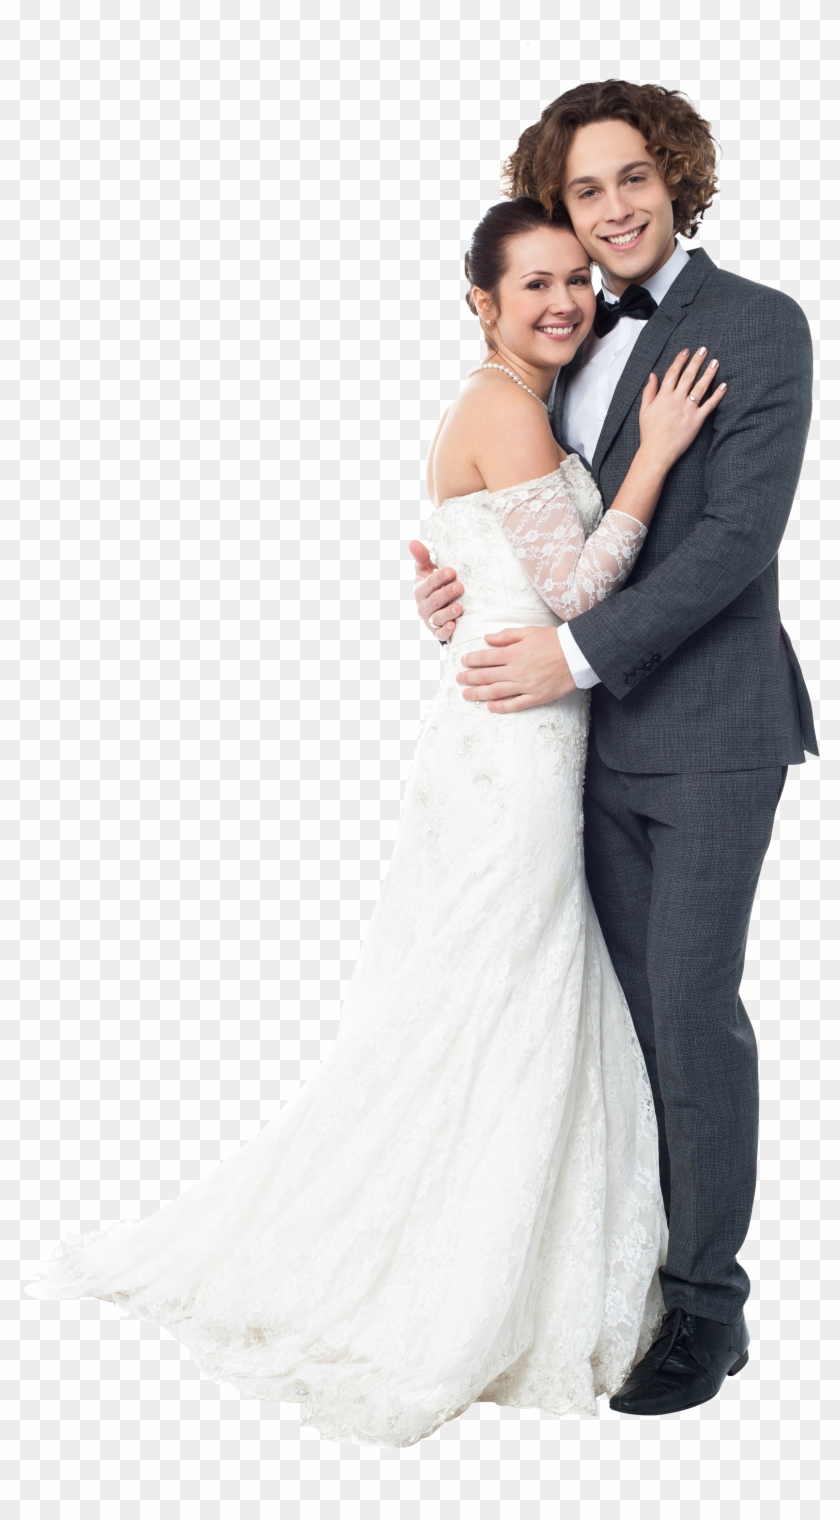 Wedding Couple Png Image - Wedding Couple Png, Transparent Png #1176325